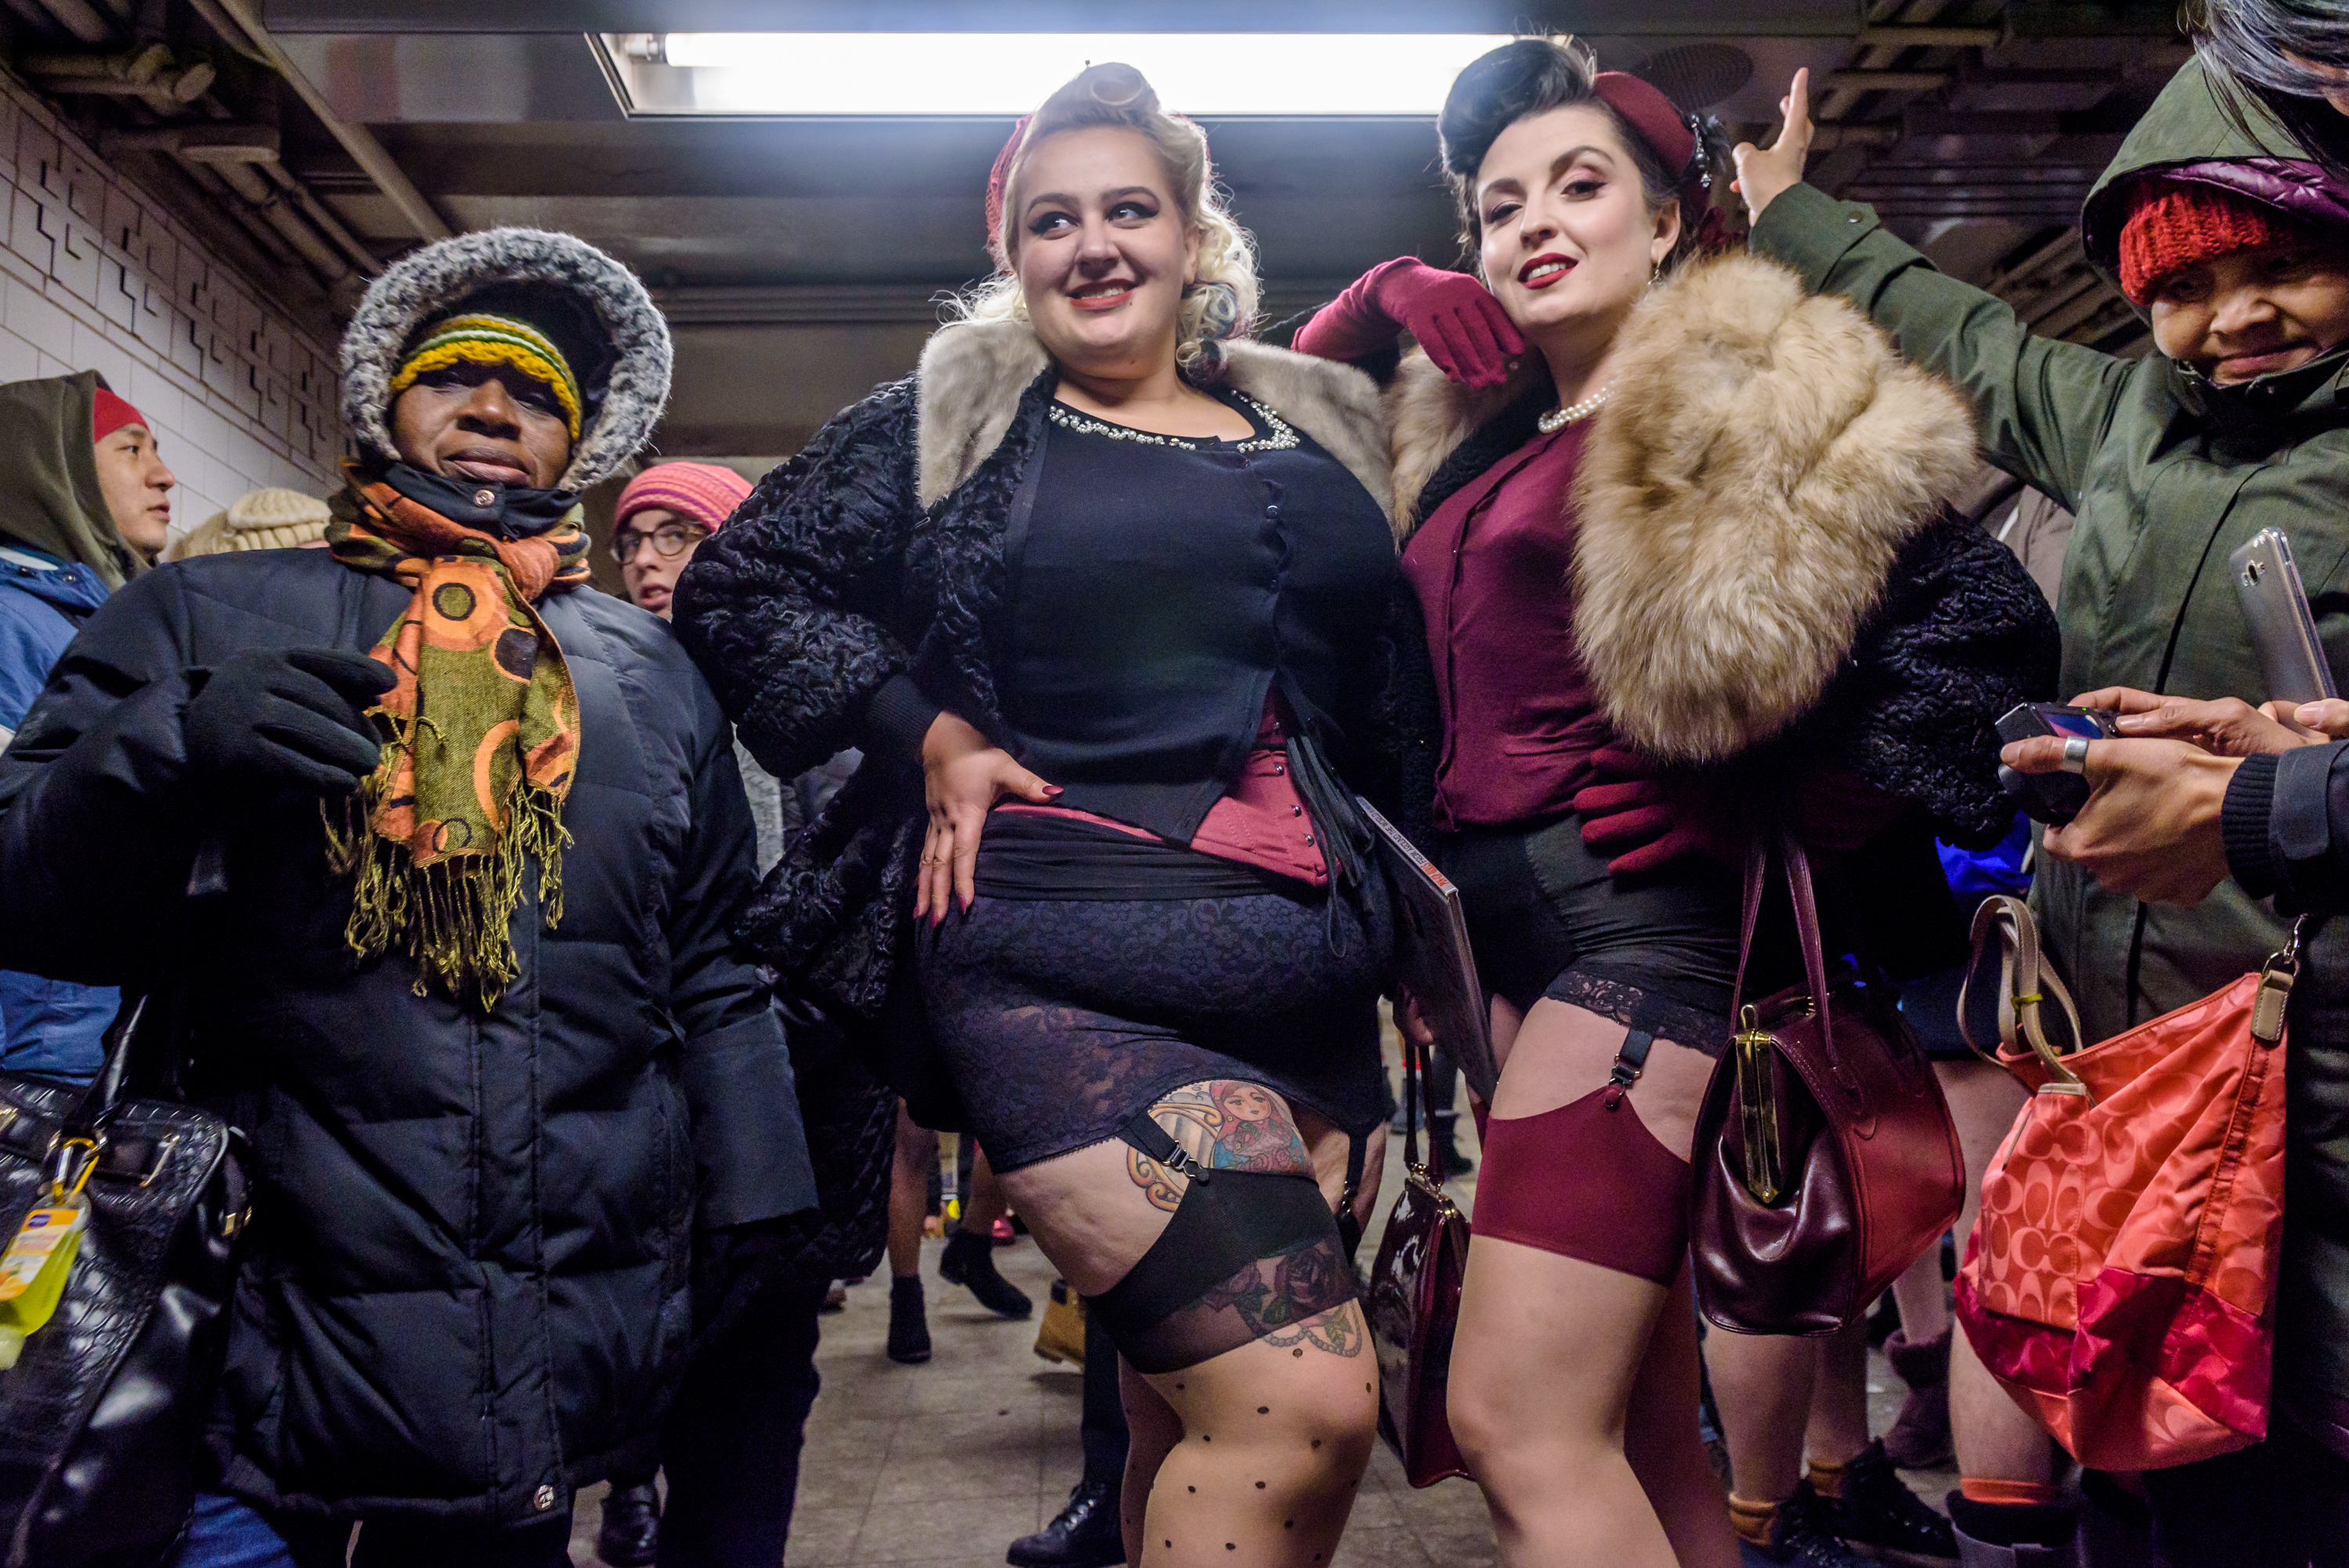 The 17th Annual No Pants Subway Ride took place; in New York